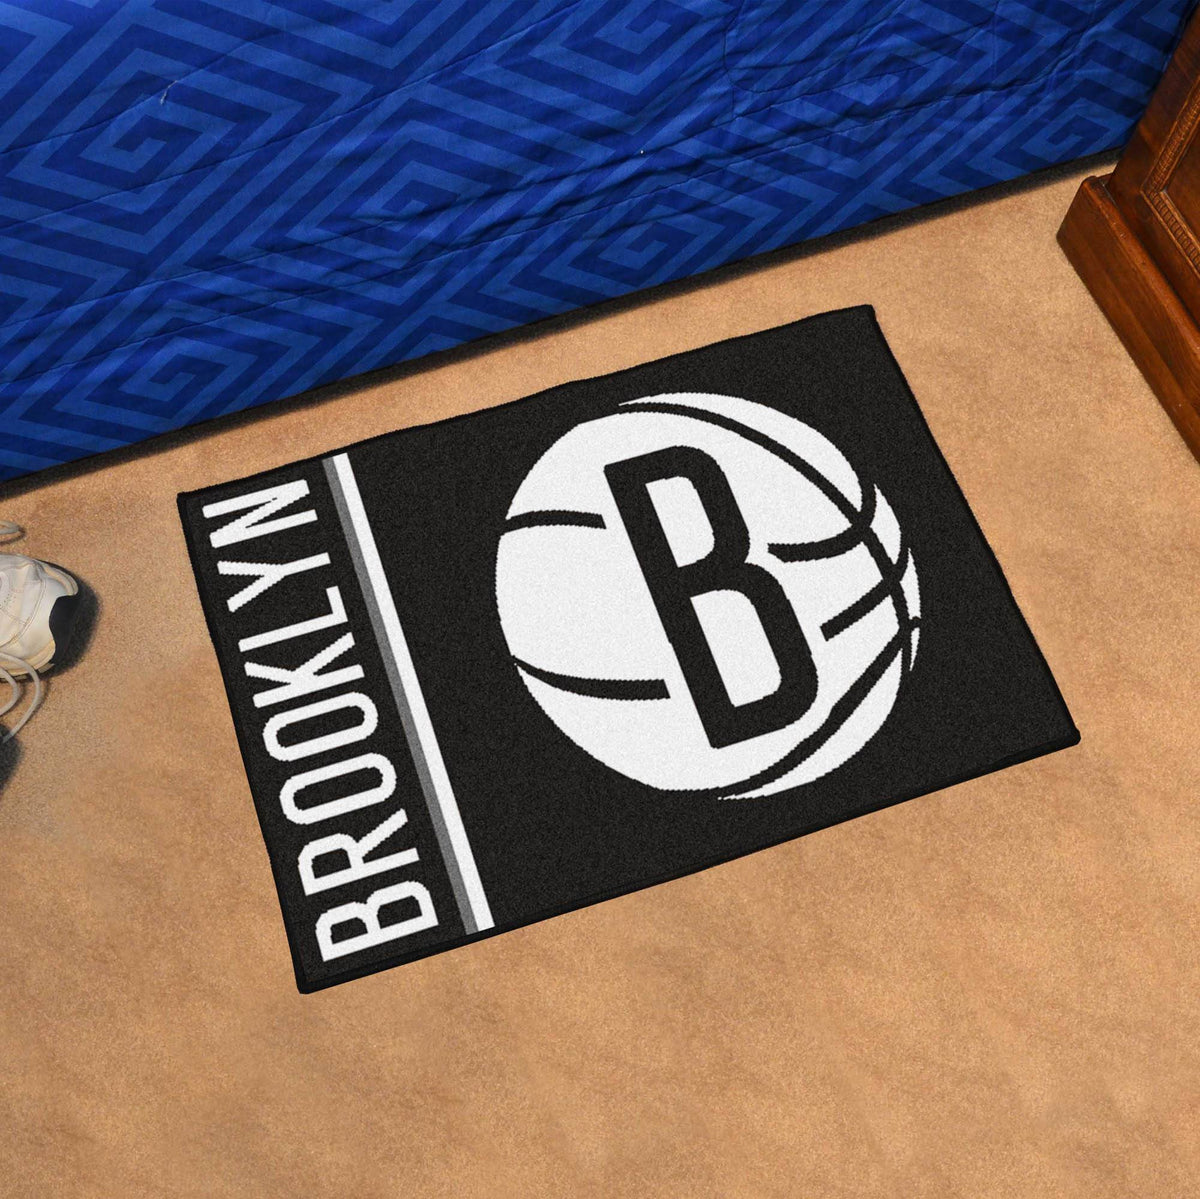 NBA - Uniform Starter Mat NBA Mats, Rectangular Mats, Uniform Starter Mat, NBA, Home Fan Mats Brooklyn Nets